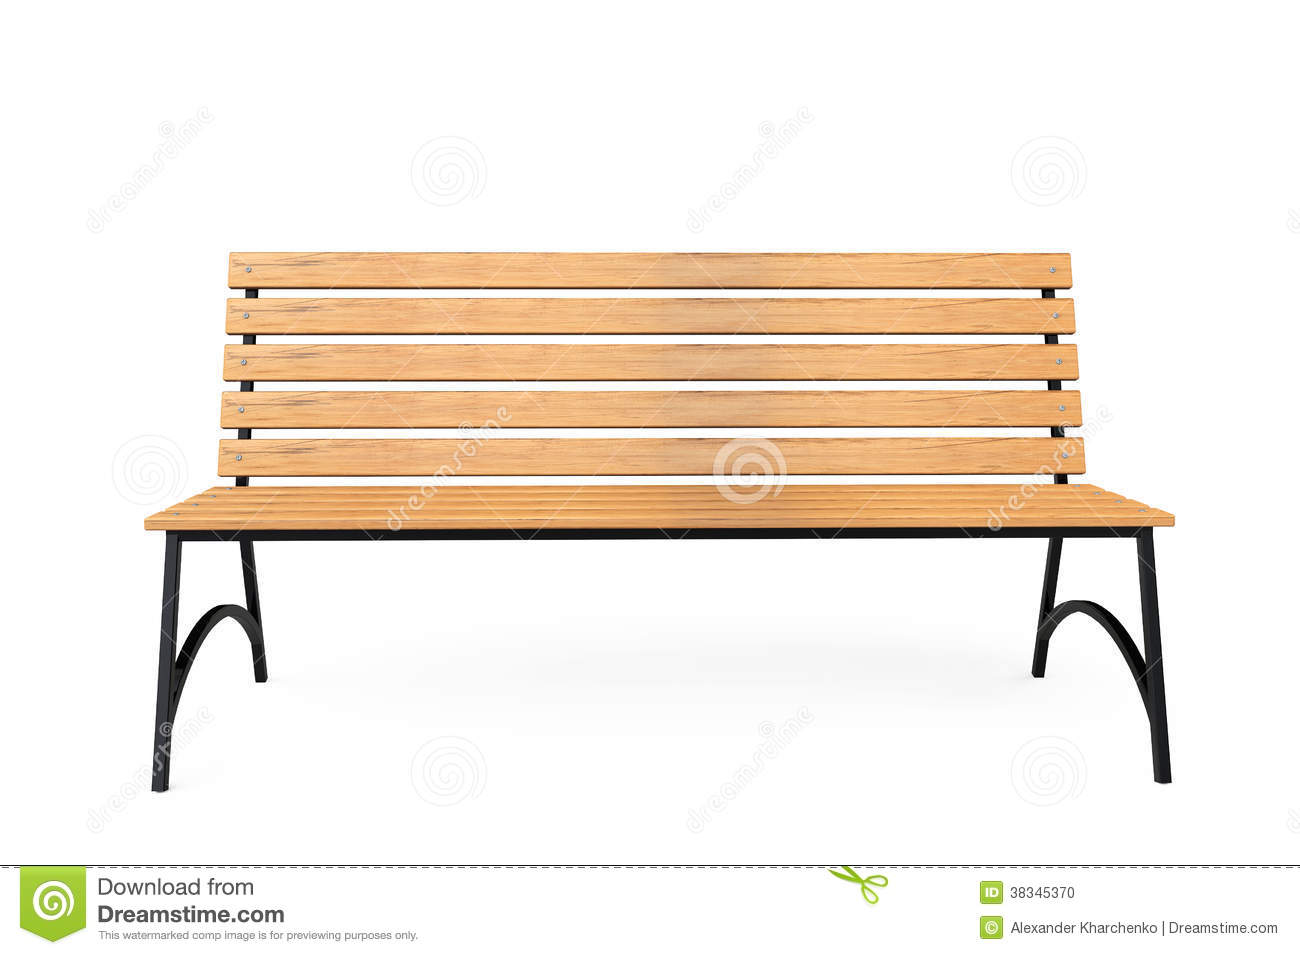 Wooden Park Bench Stock Photo Image Of Design Chair 38345370